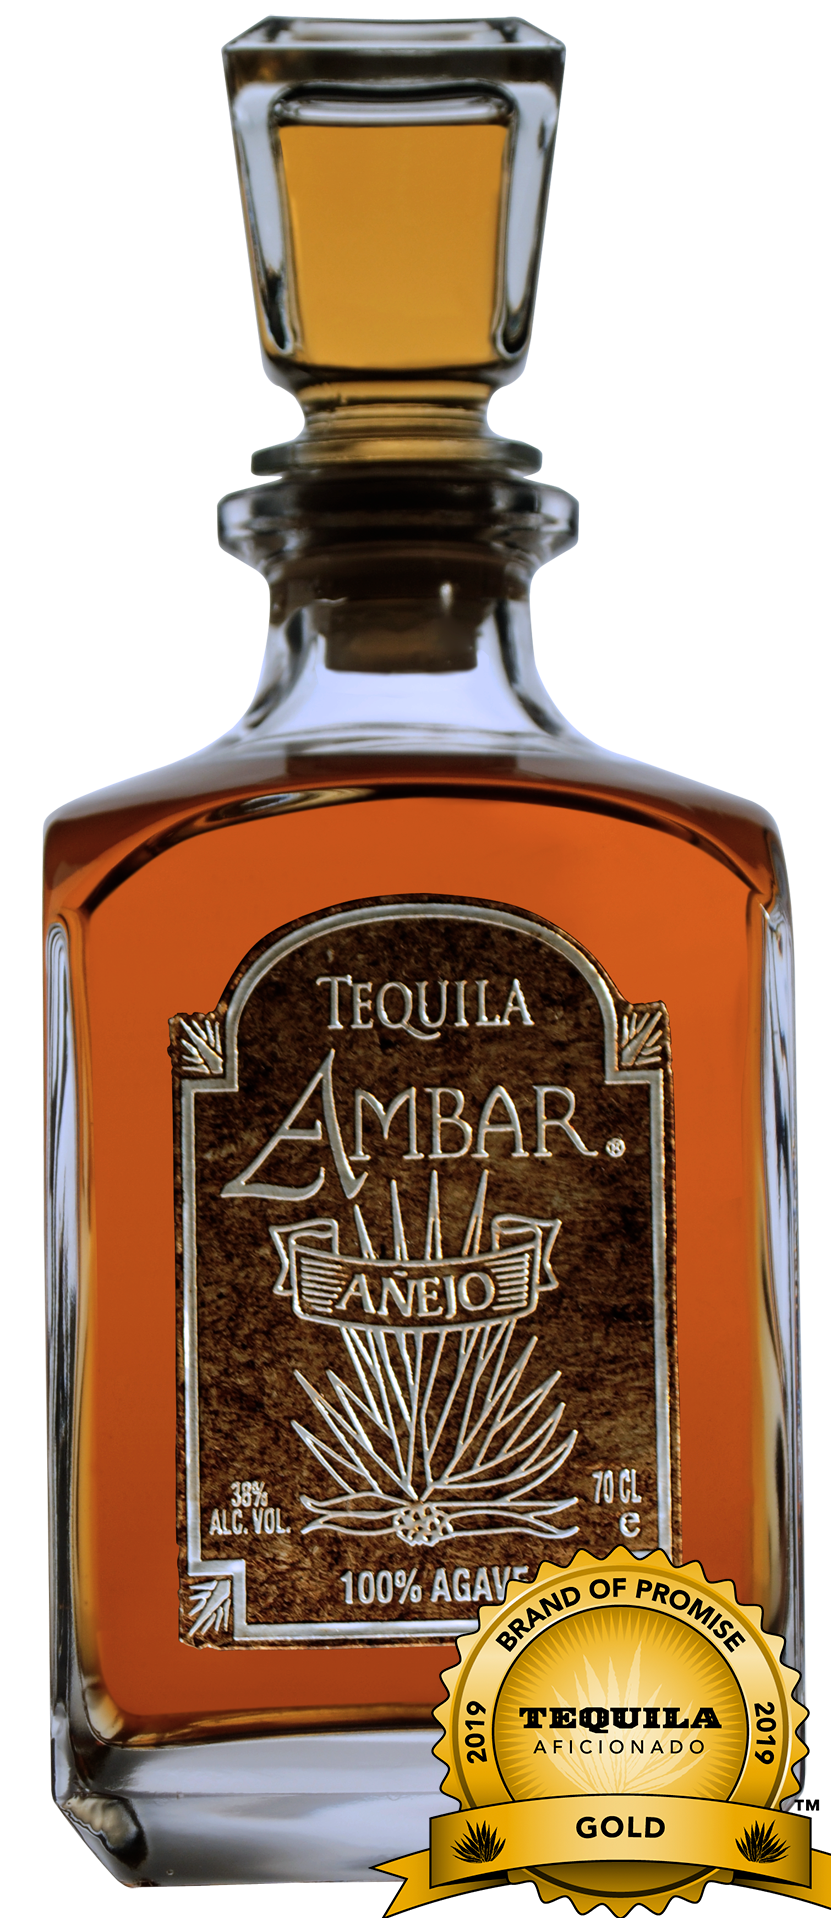 Tequila Ambar Ultra-Premium 100% Highland Agave, Anejo, awarded a Gold Medal.